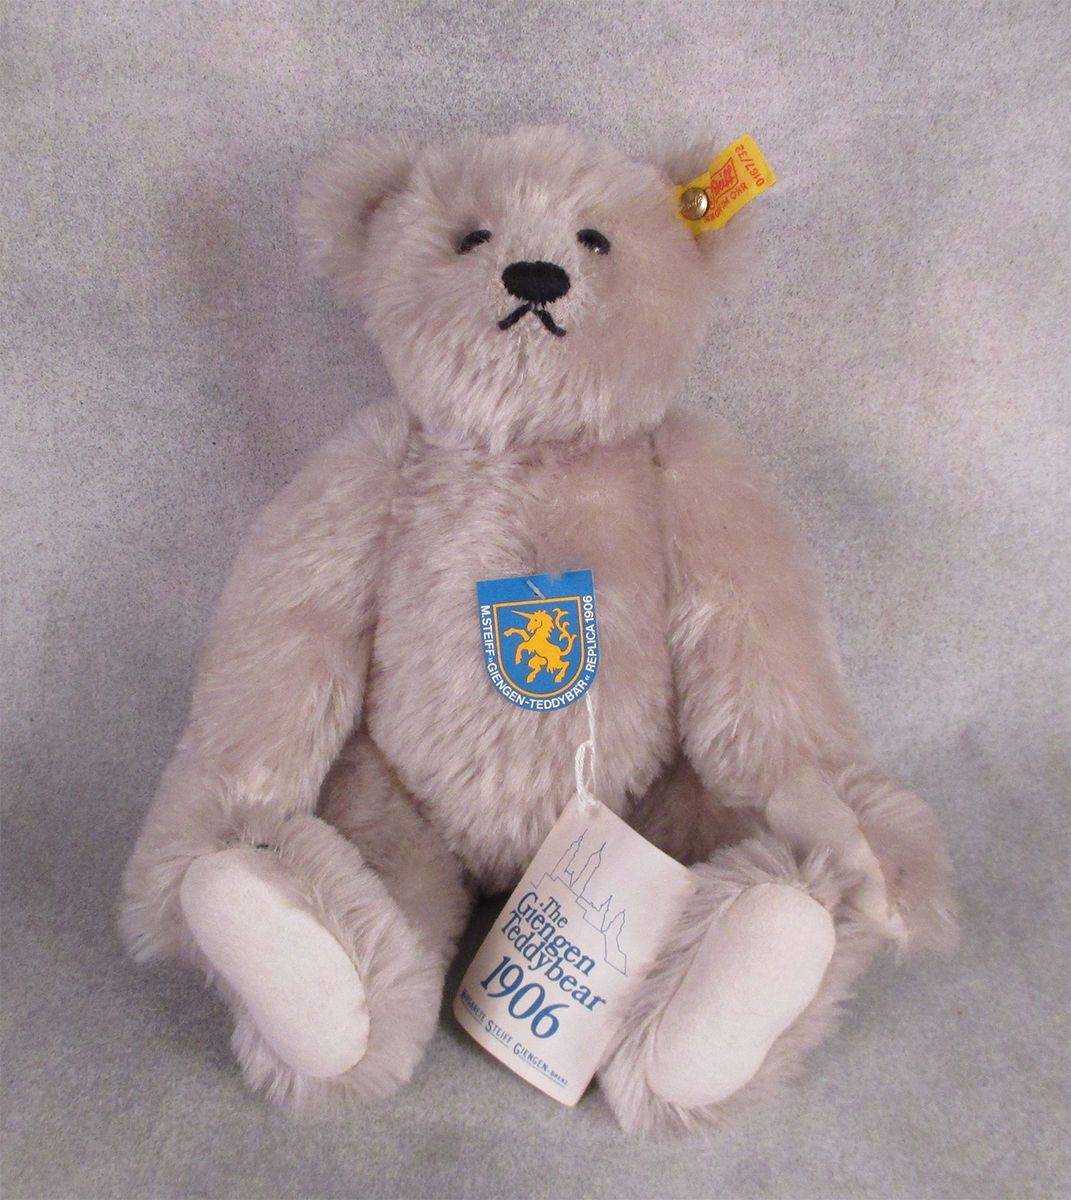 "#Steiff 1985 giengen 12"" #teddy bear 1906 vintage new 0167/32 #valentine,  View more on the LINK: 	http://www.zeppy.io/product/gb/2/112277626651/"